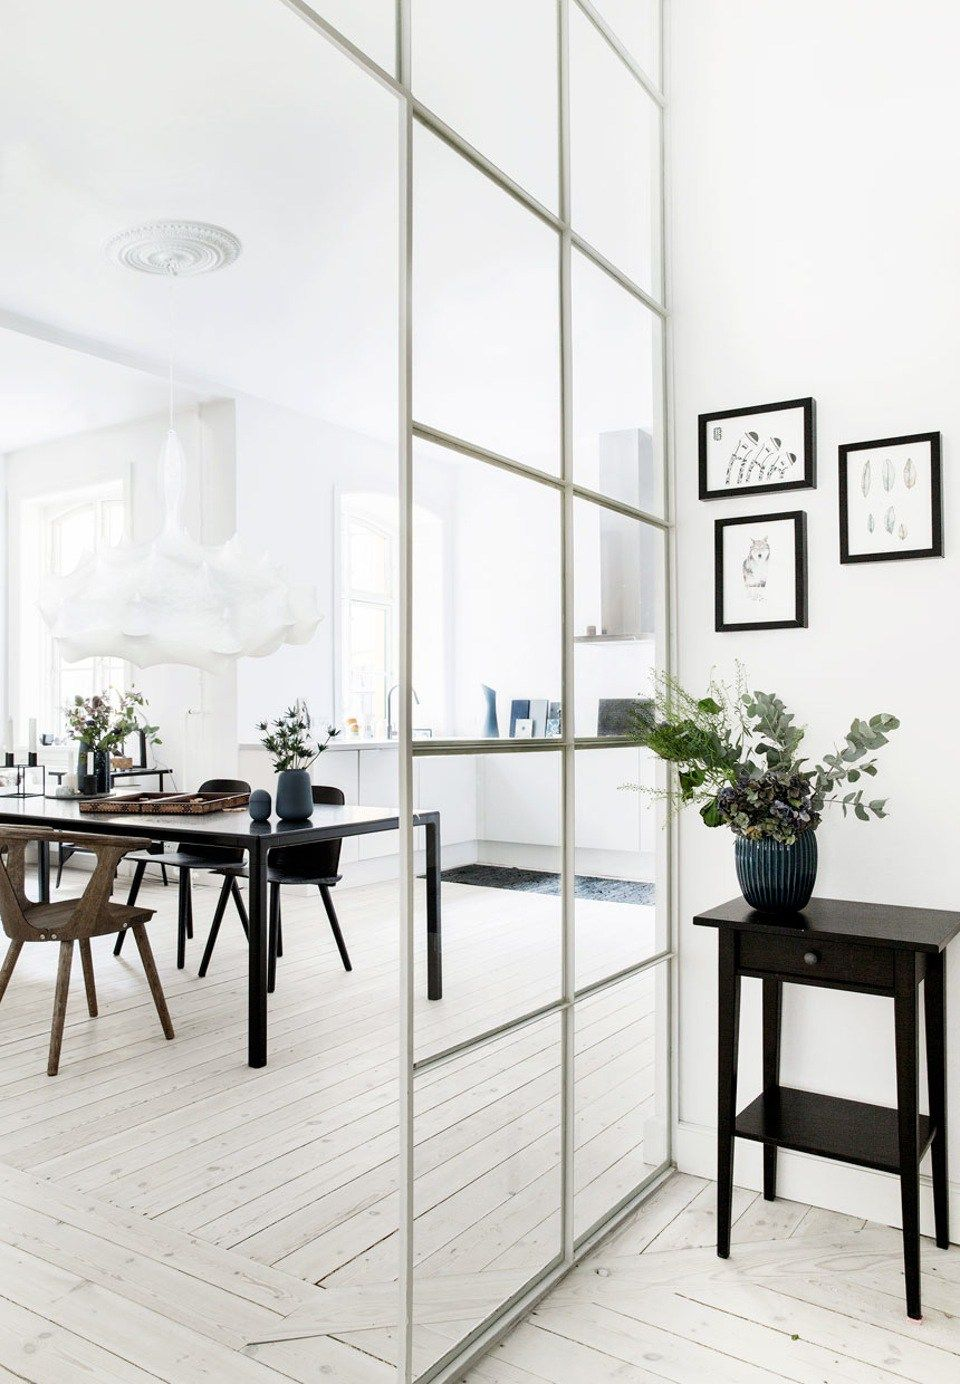 Hallway storage with sliding doors  A glazed partition to divide the kitchen and hallway  Kitchens